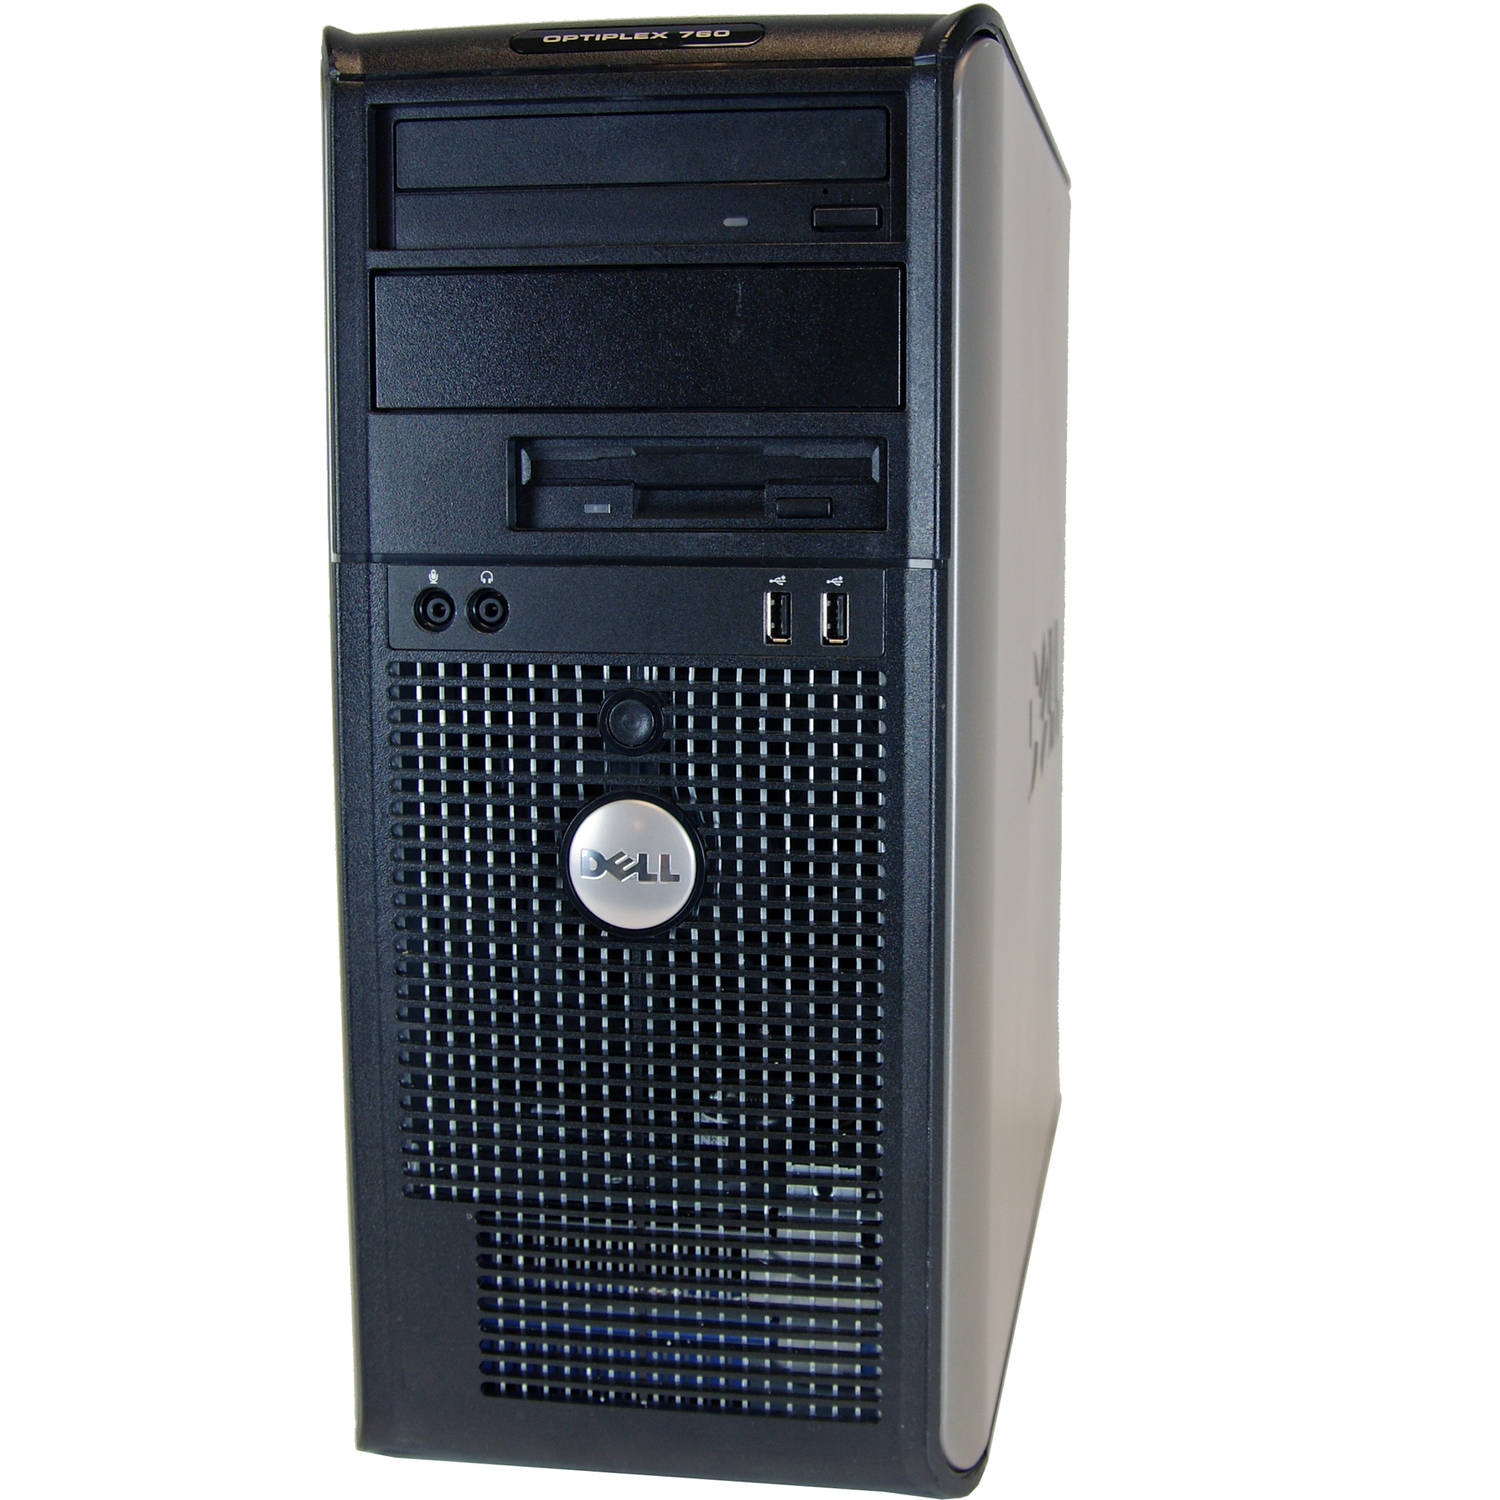 Refurbished Dell 760 Mini Tower Desktop PC with Intel Core 2 Duo Processor, 4GB Memory, 750GB Hard Drive and Windows 10 Home (Monitor Not Included)